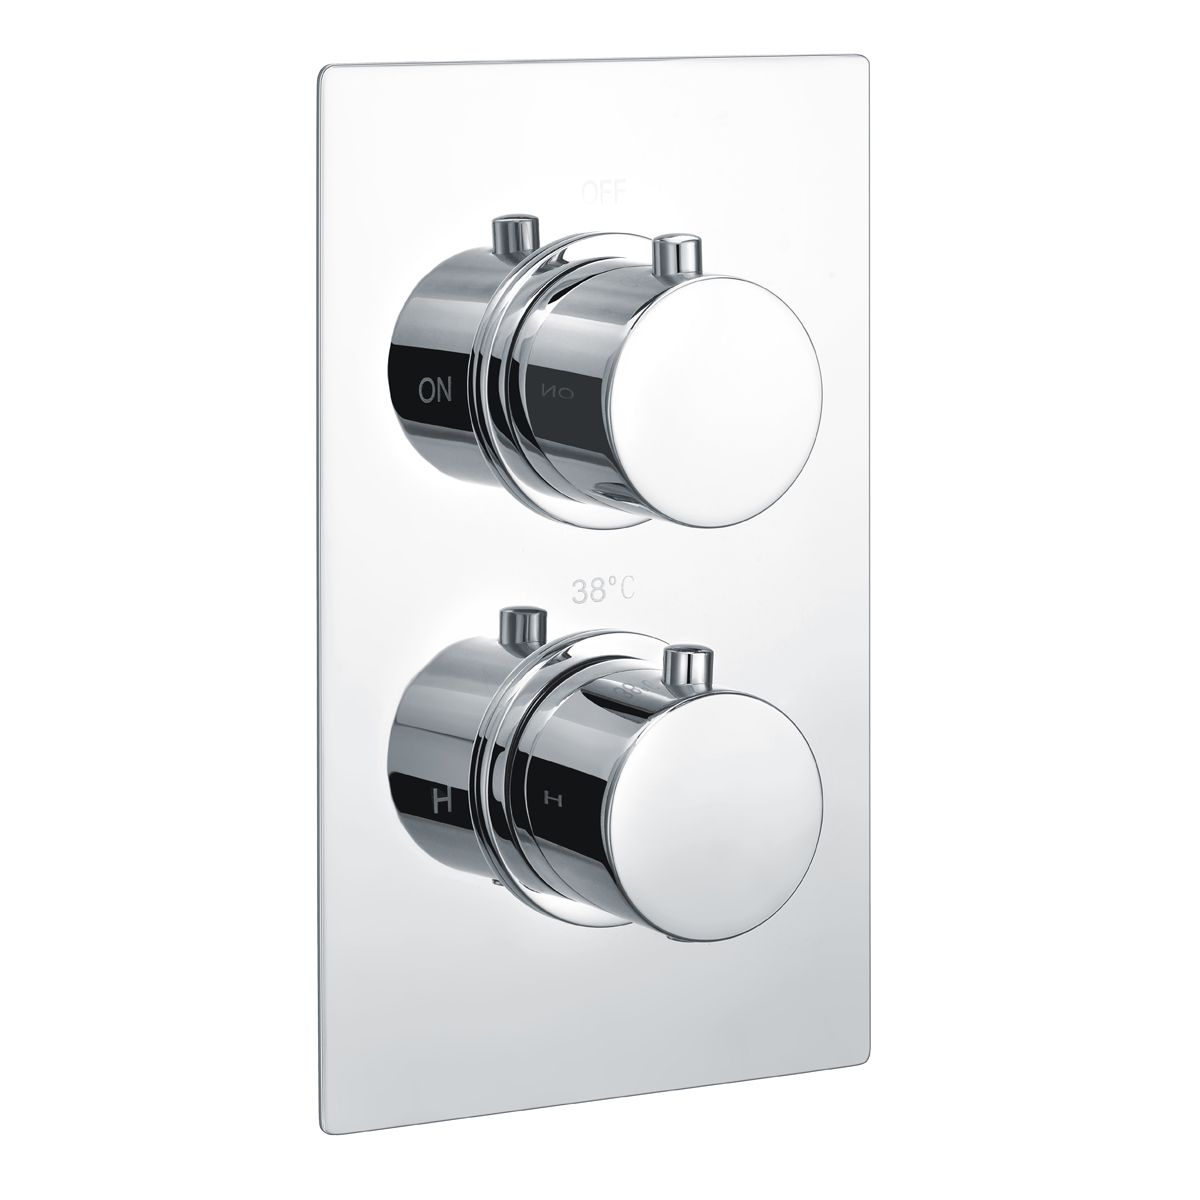 RAK White Round Single Outlet 2 Handle Thermostatic Shower Valve